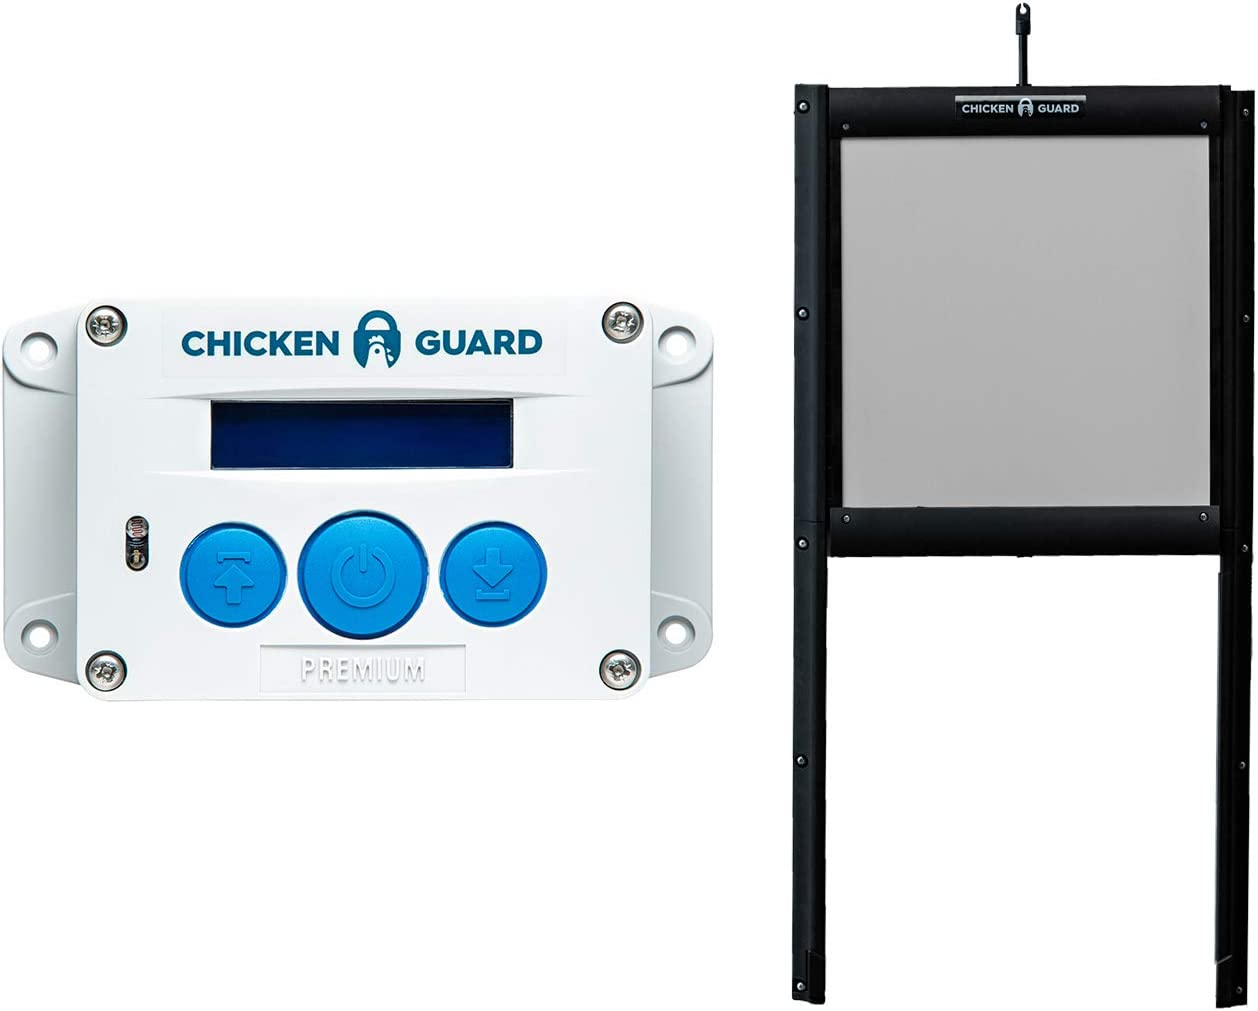 CHICKENGUARD Waterproof Automatic Chicken Coop Door Opener Closer with Timer Light Sensor Plus Predator Resistant Self Locking Pop Hole Door Kit. Coop Accessory with 3 Year Warranty Premium